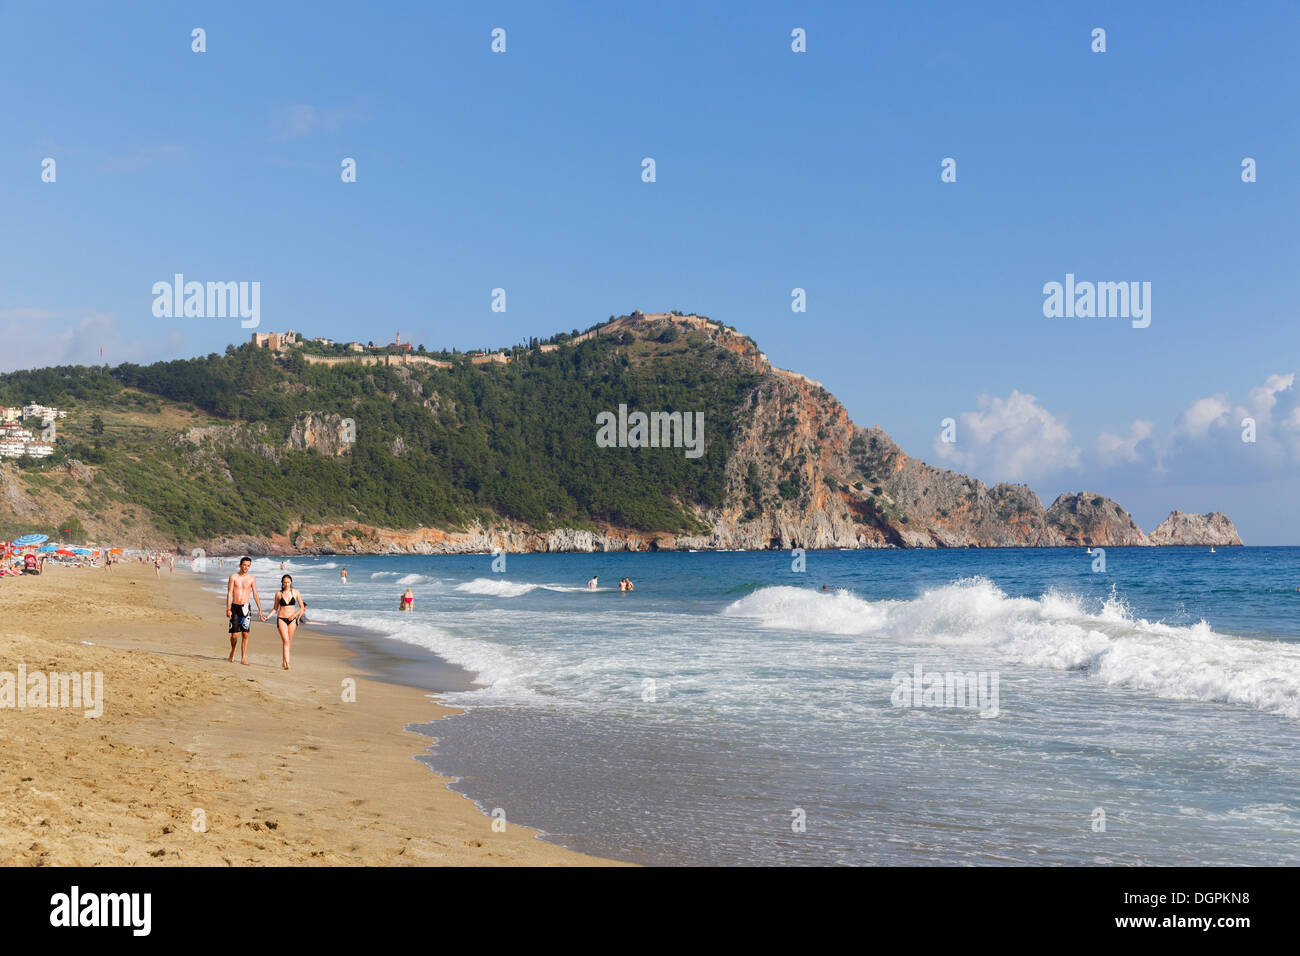 Favorit Kleopatra Stock Photos & Kleopatra Stock Images - Alamy CH25